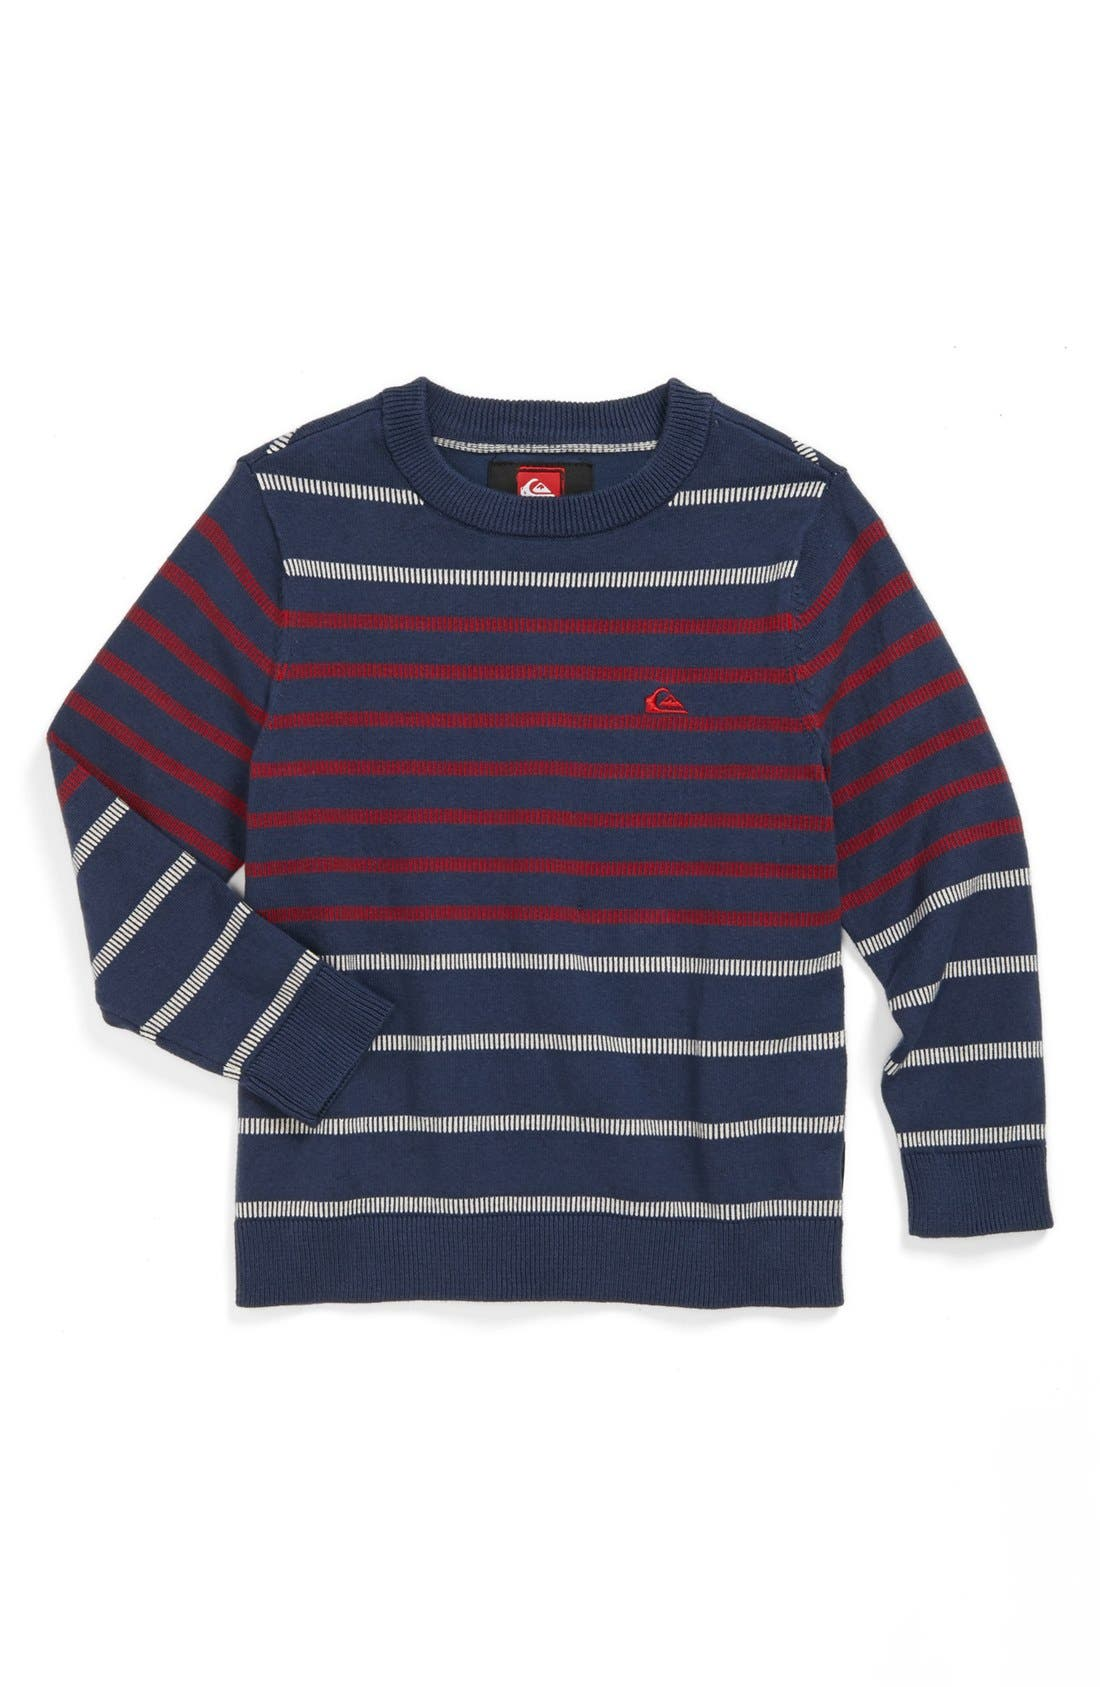 Main Image - Quiksilver 'Sweet Fears' Cotton Blend Sweater (Toddler Boys)